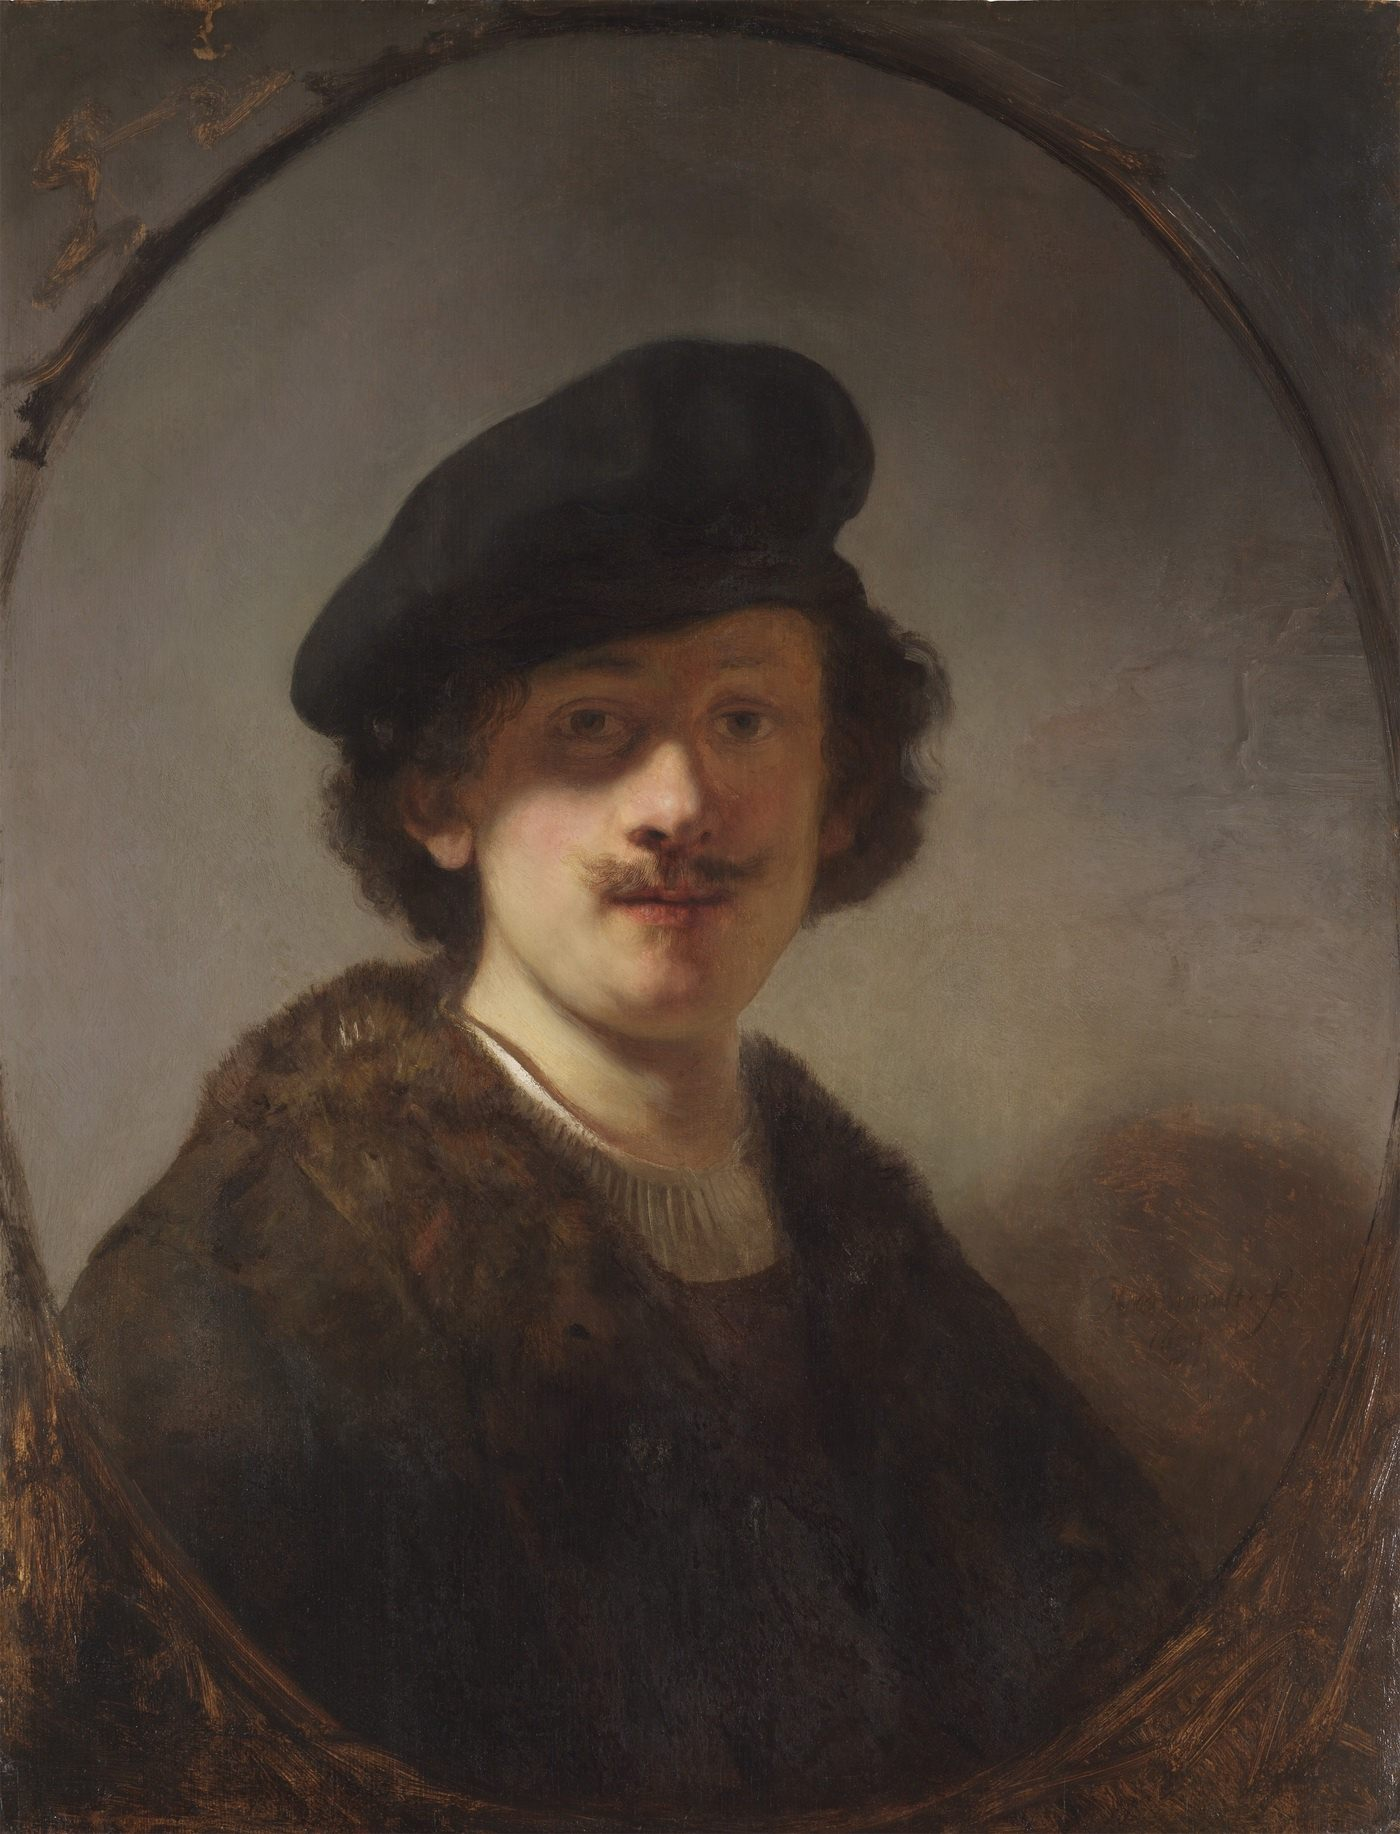 The Pushkin Museum. A.S. Pushkin invites to the Museum of Rembrandt's birthday